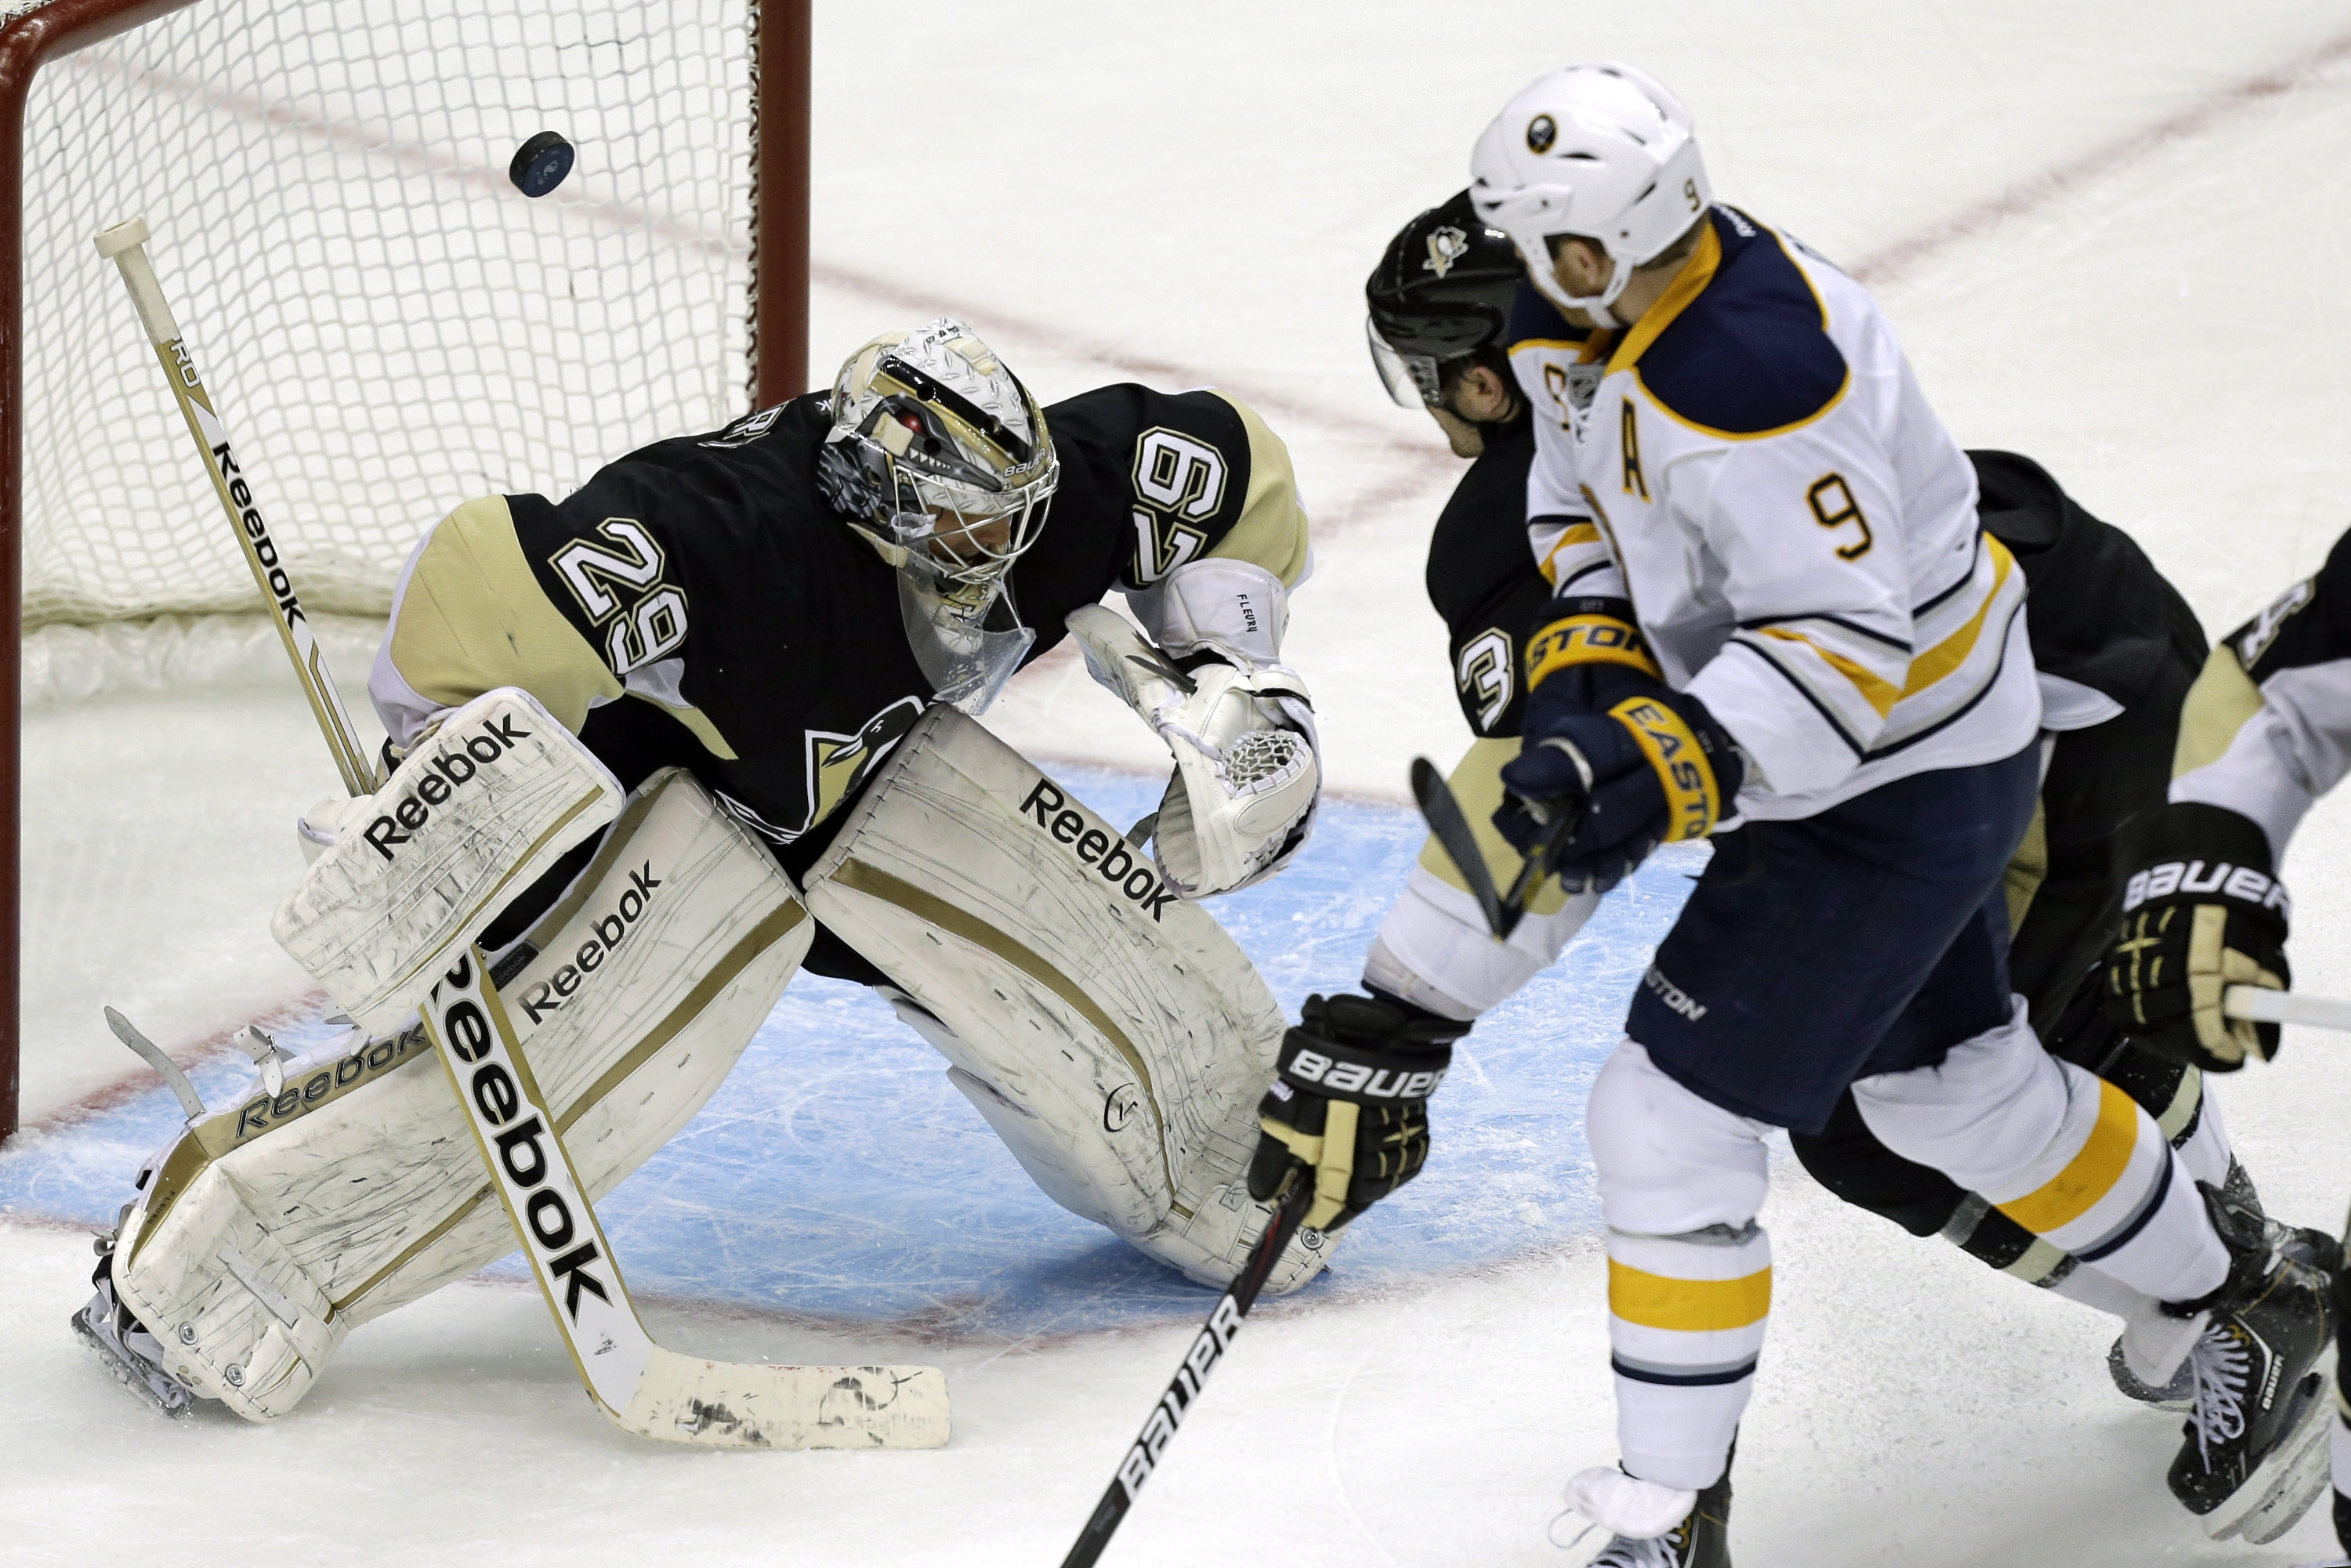 Buffalo's Steve Ott (9) deflects a rebound for a goal against Pittsburgh Penguins goalie Marc-Andre Fleury in the third period.